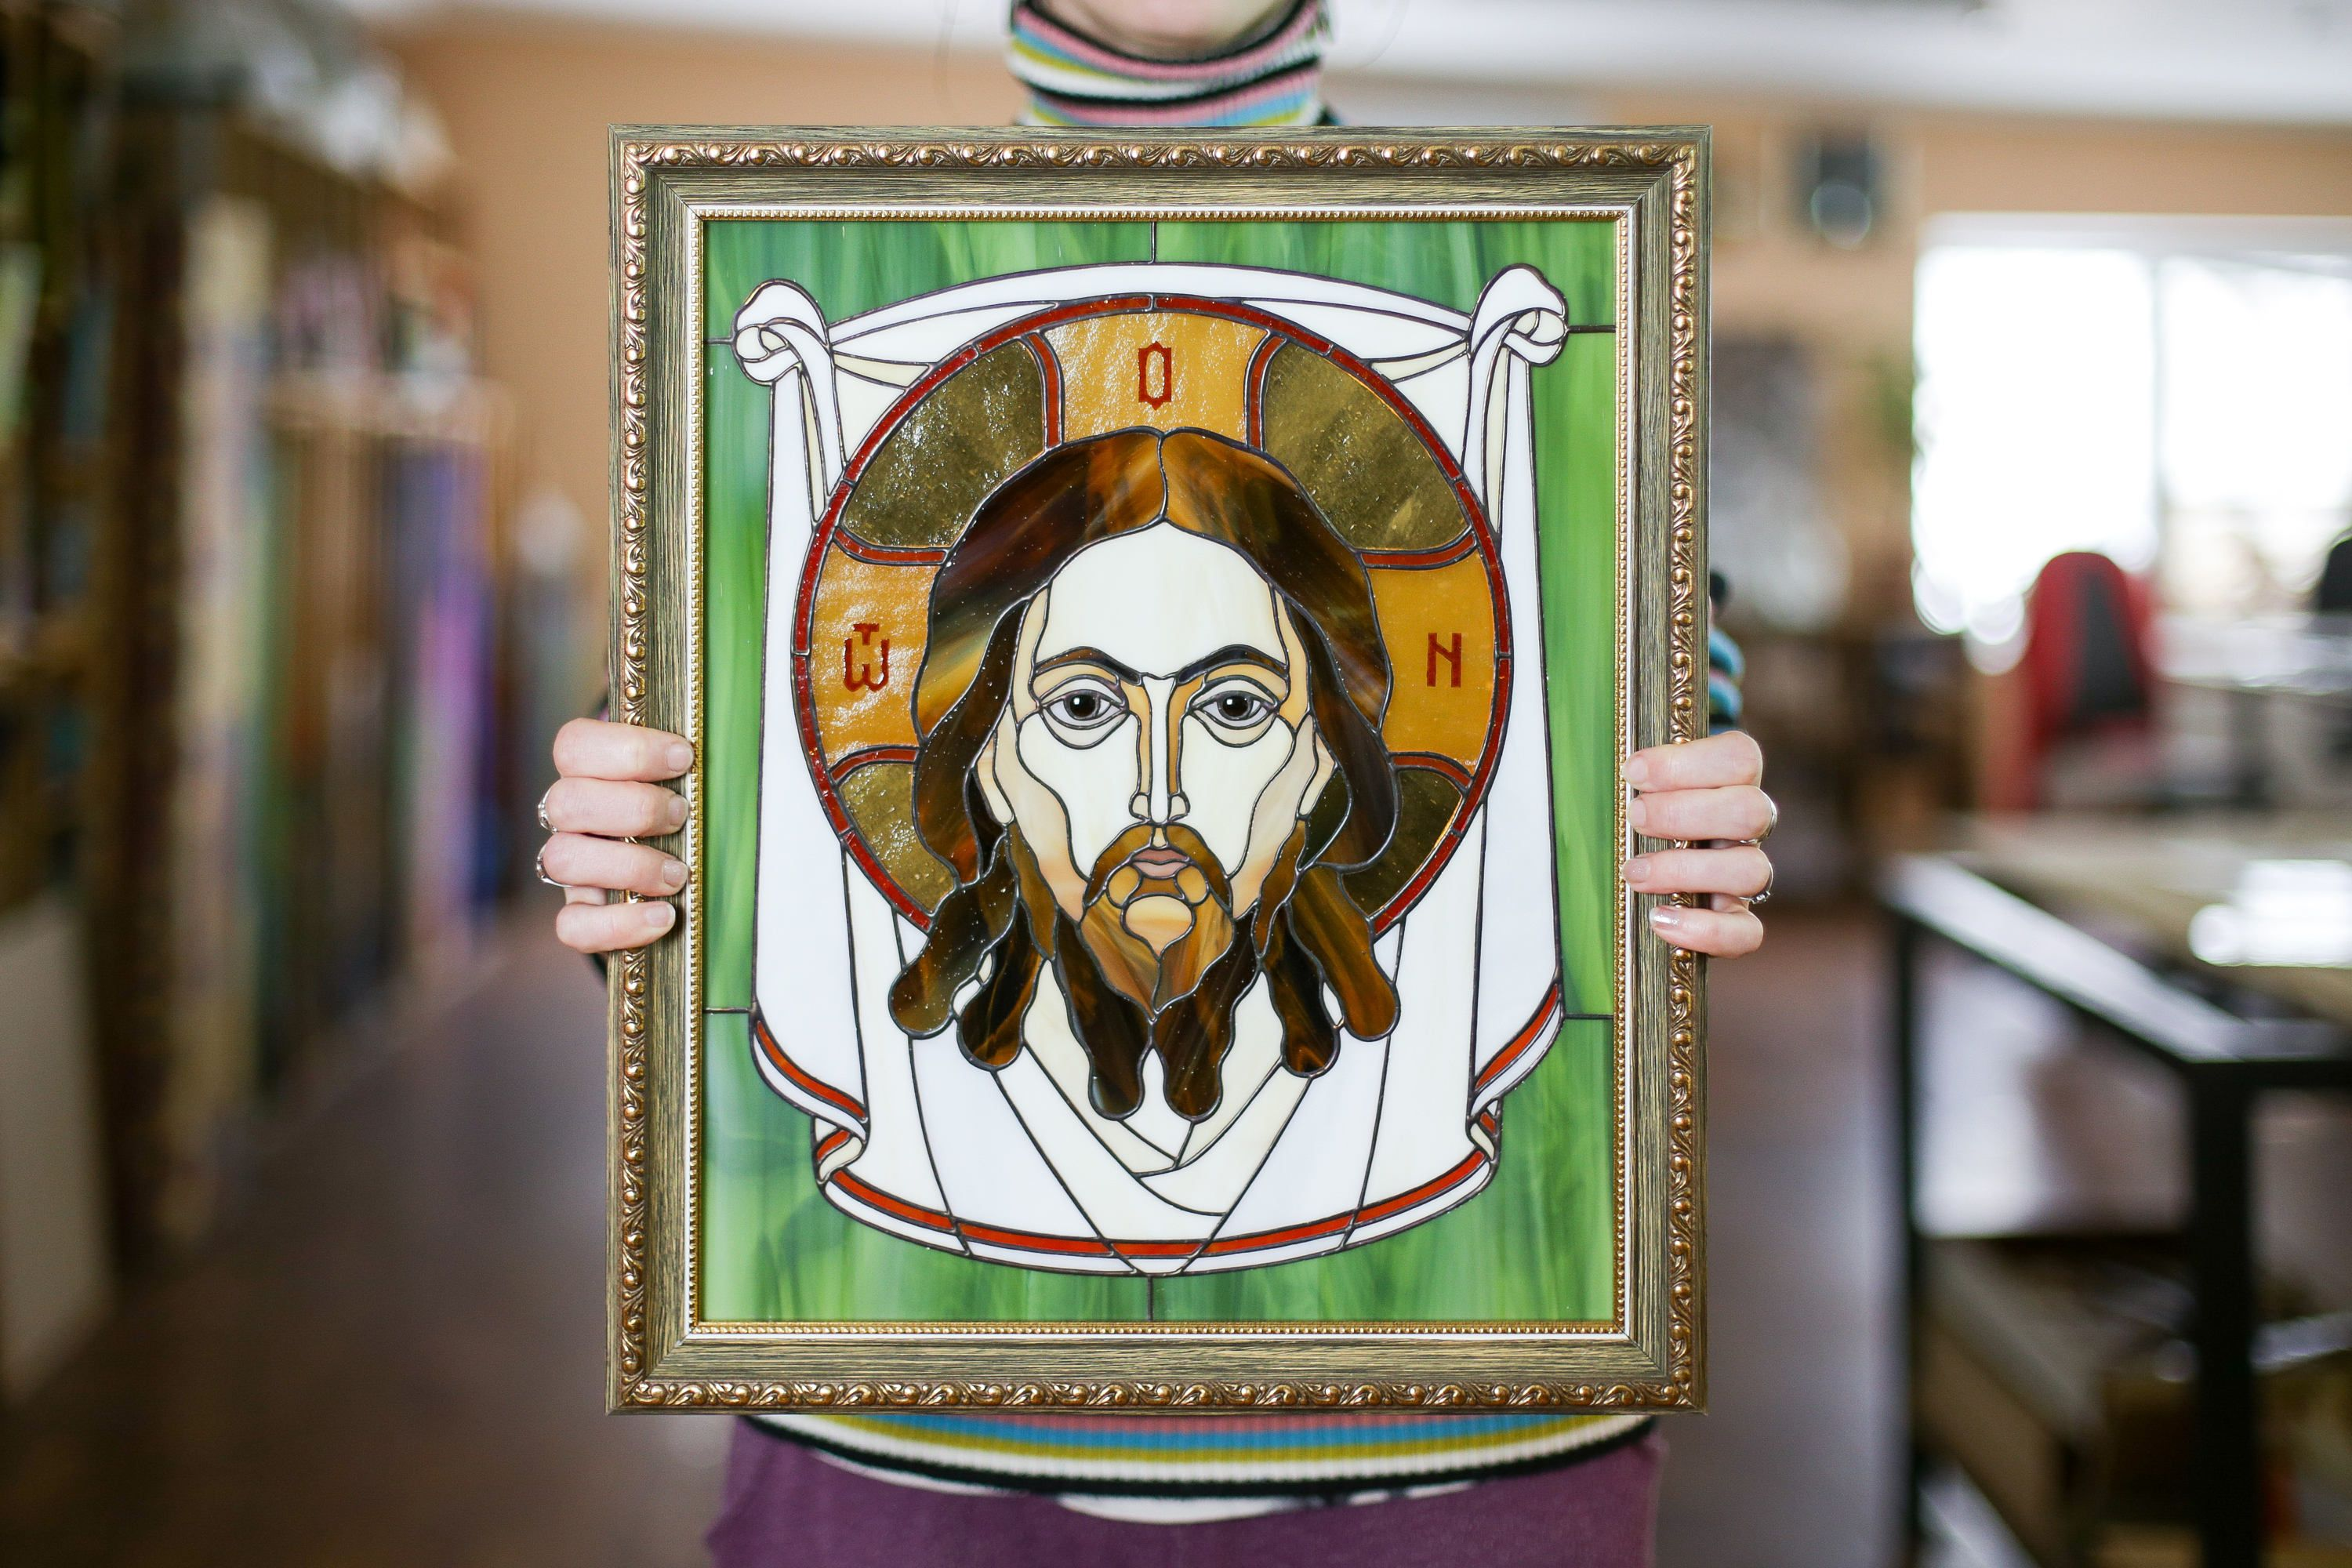 Jesus christ stain glass easter gifts jesus wall art jesus christ stain glass easter gifts jesus wall art negle Gallery